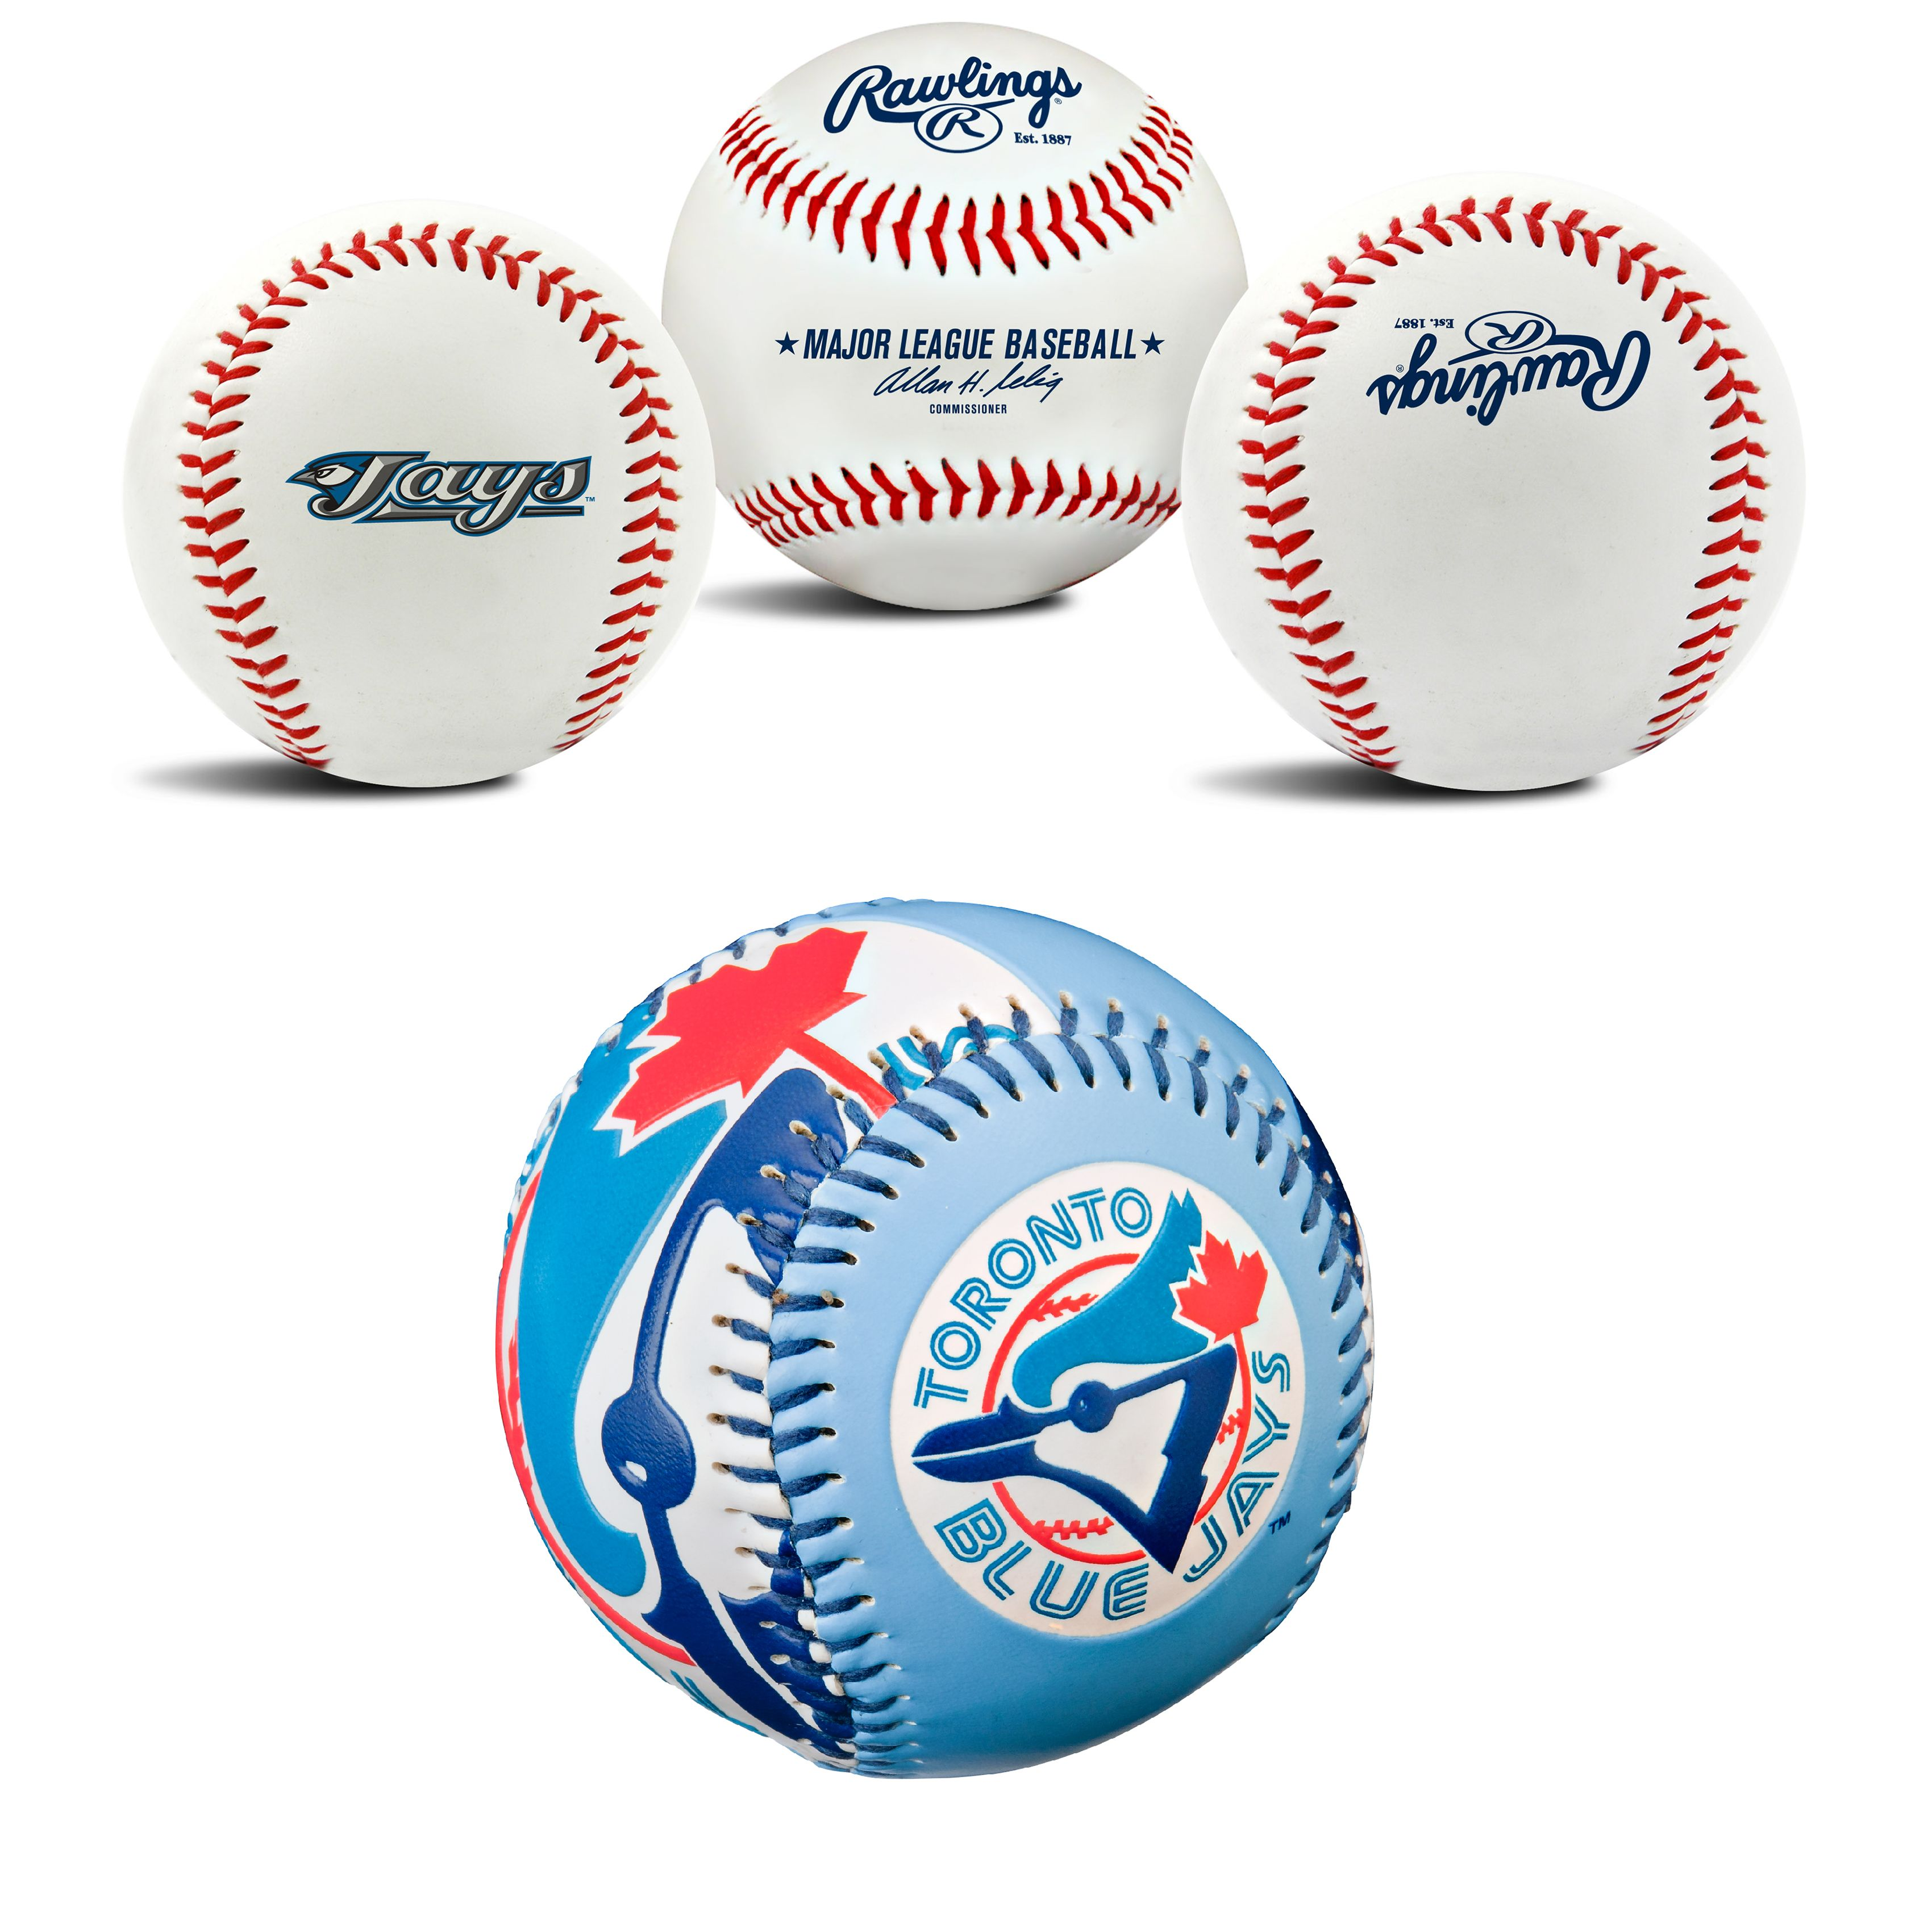 Toronto Blue Jays MLB Retro and Team Logo Authentic Baseballs Bundle 2 Pack